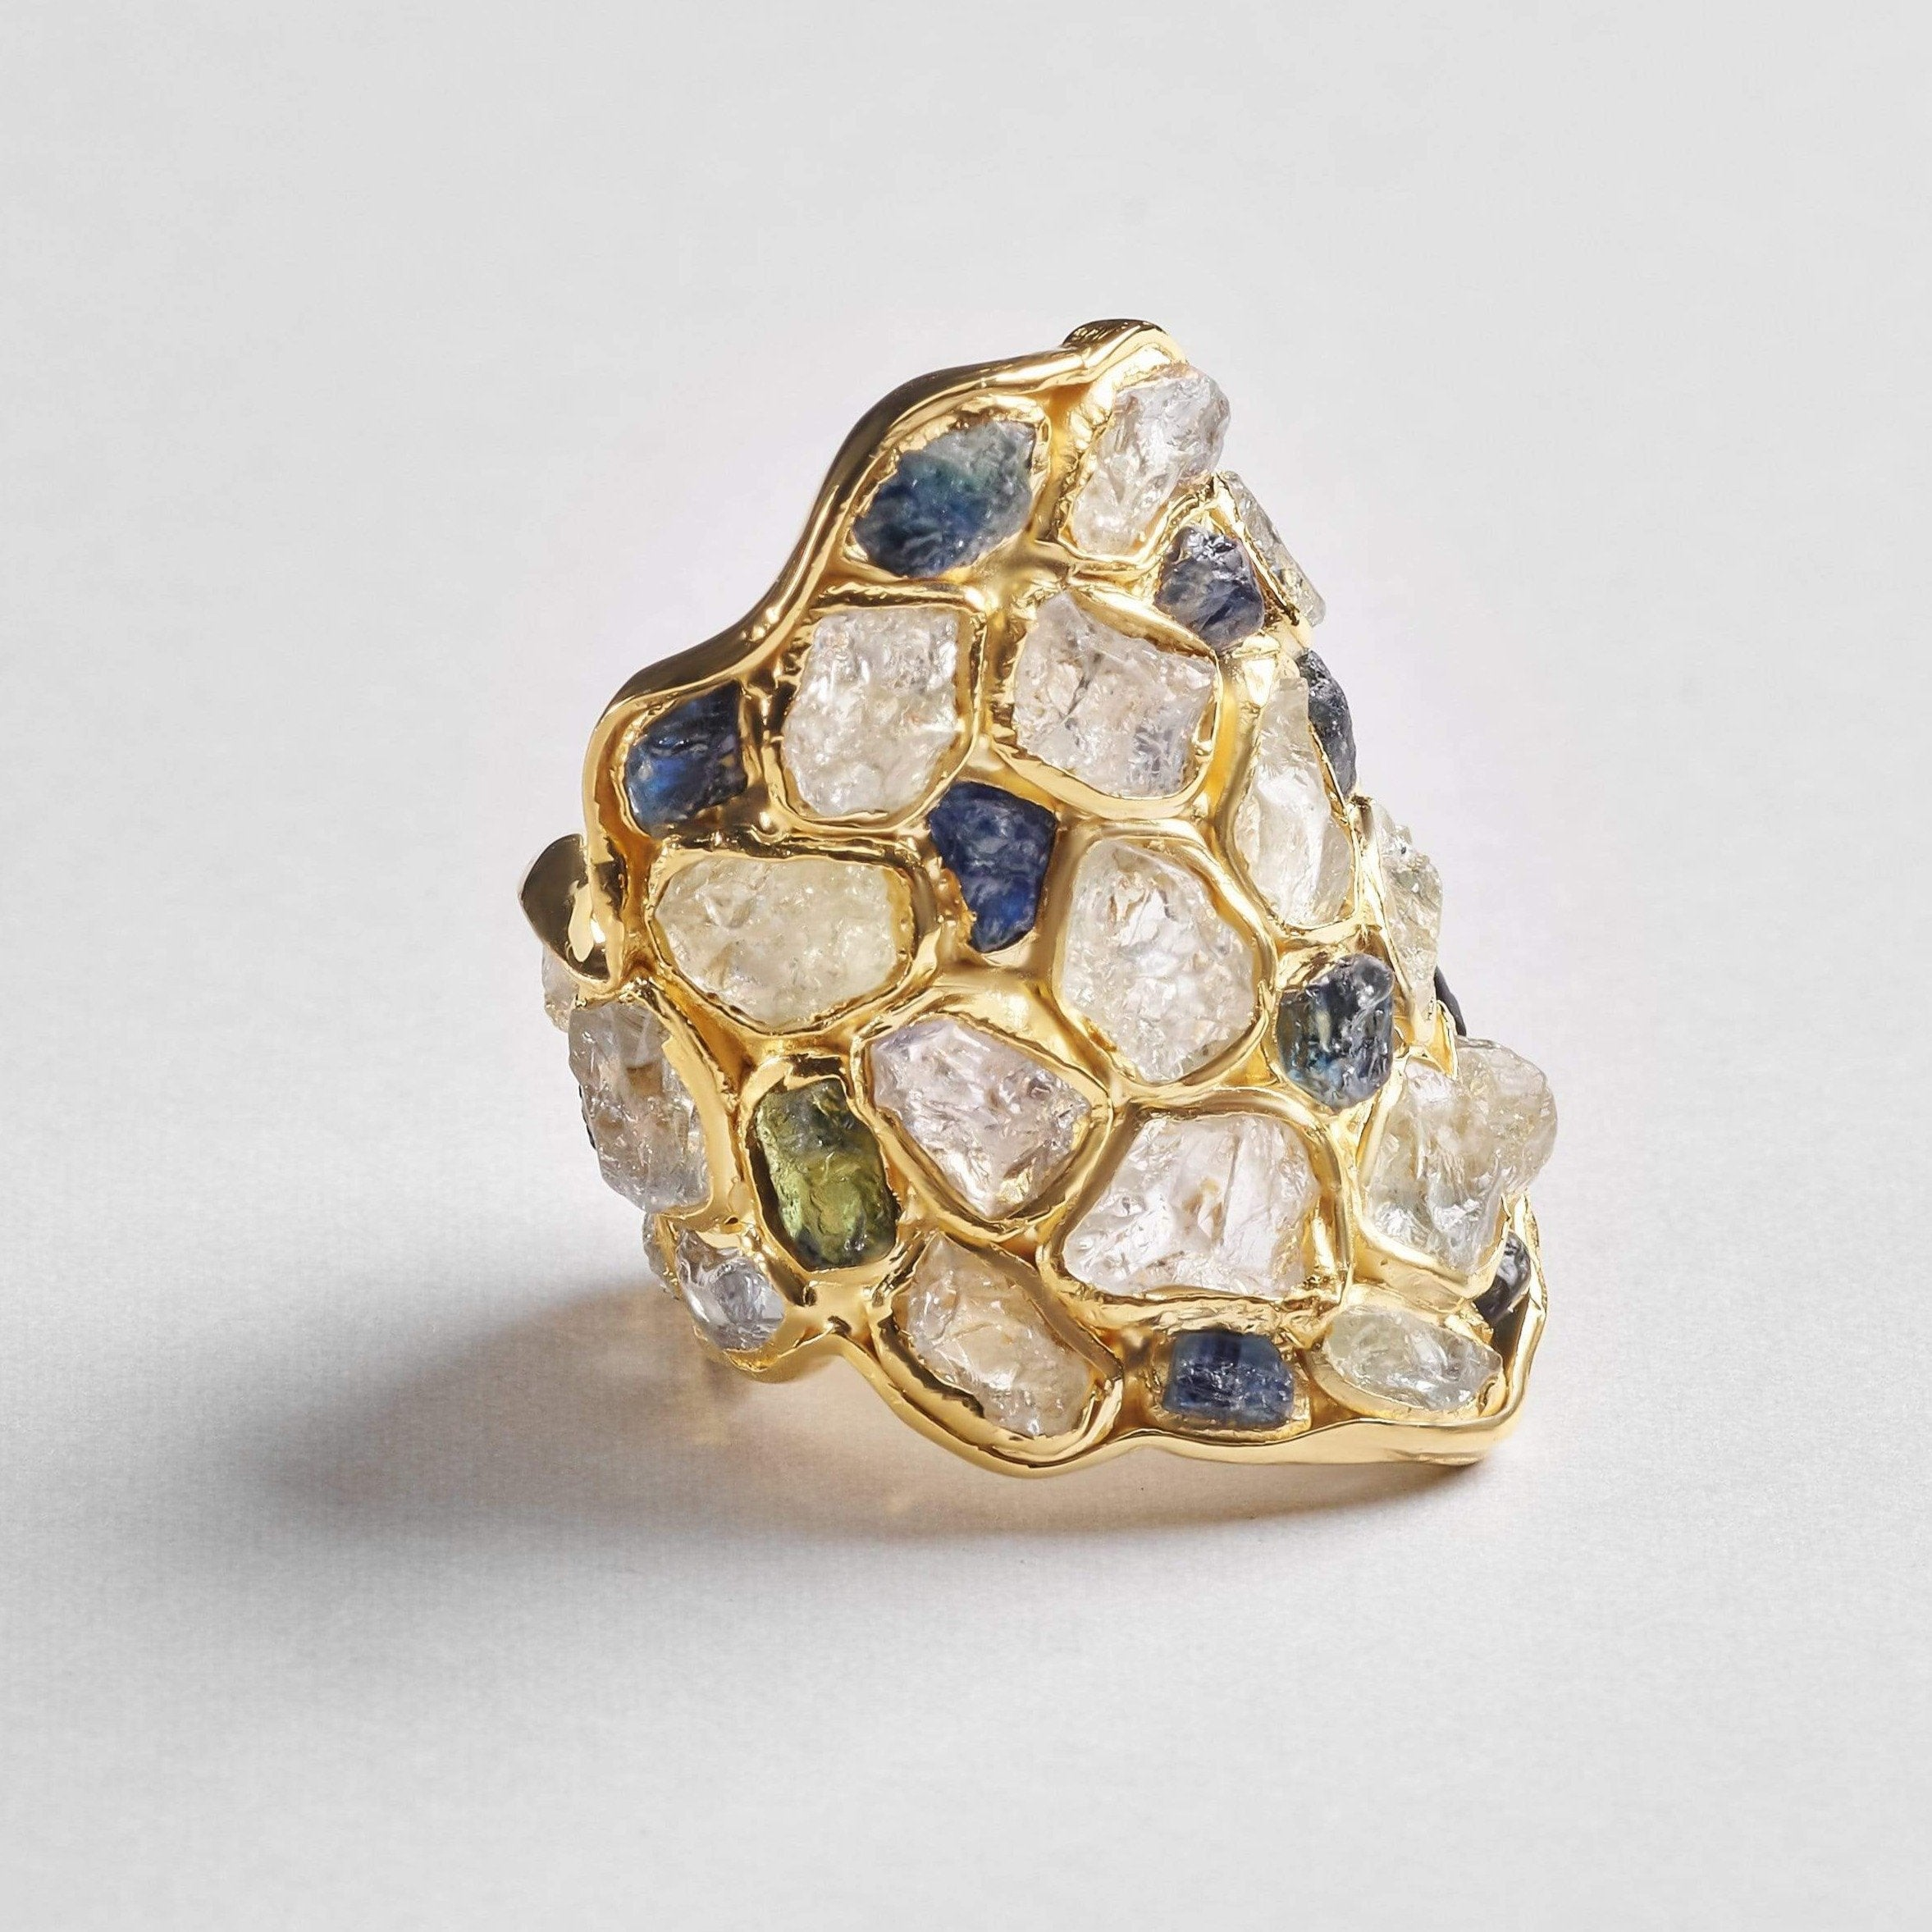 Nerissa White Ring, Gold, Handmade, Sapphire, spo-disabled, StoneColor:Blue, StoneColor:PastelColor, Style:Everyday, Type:StainedGlass Ring